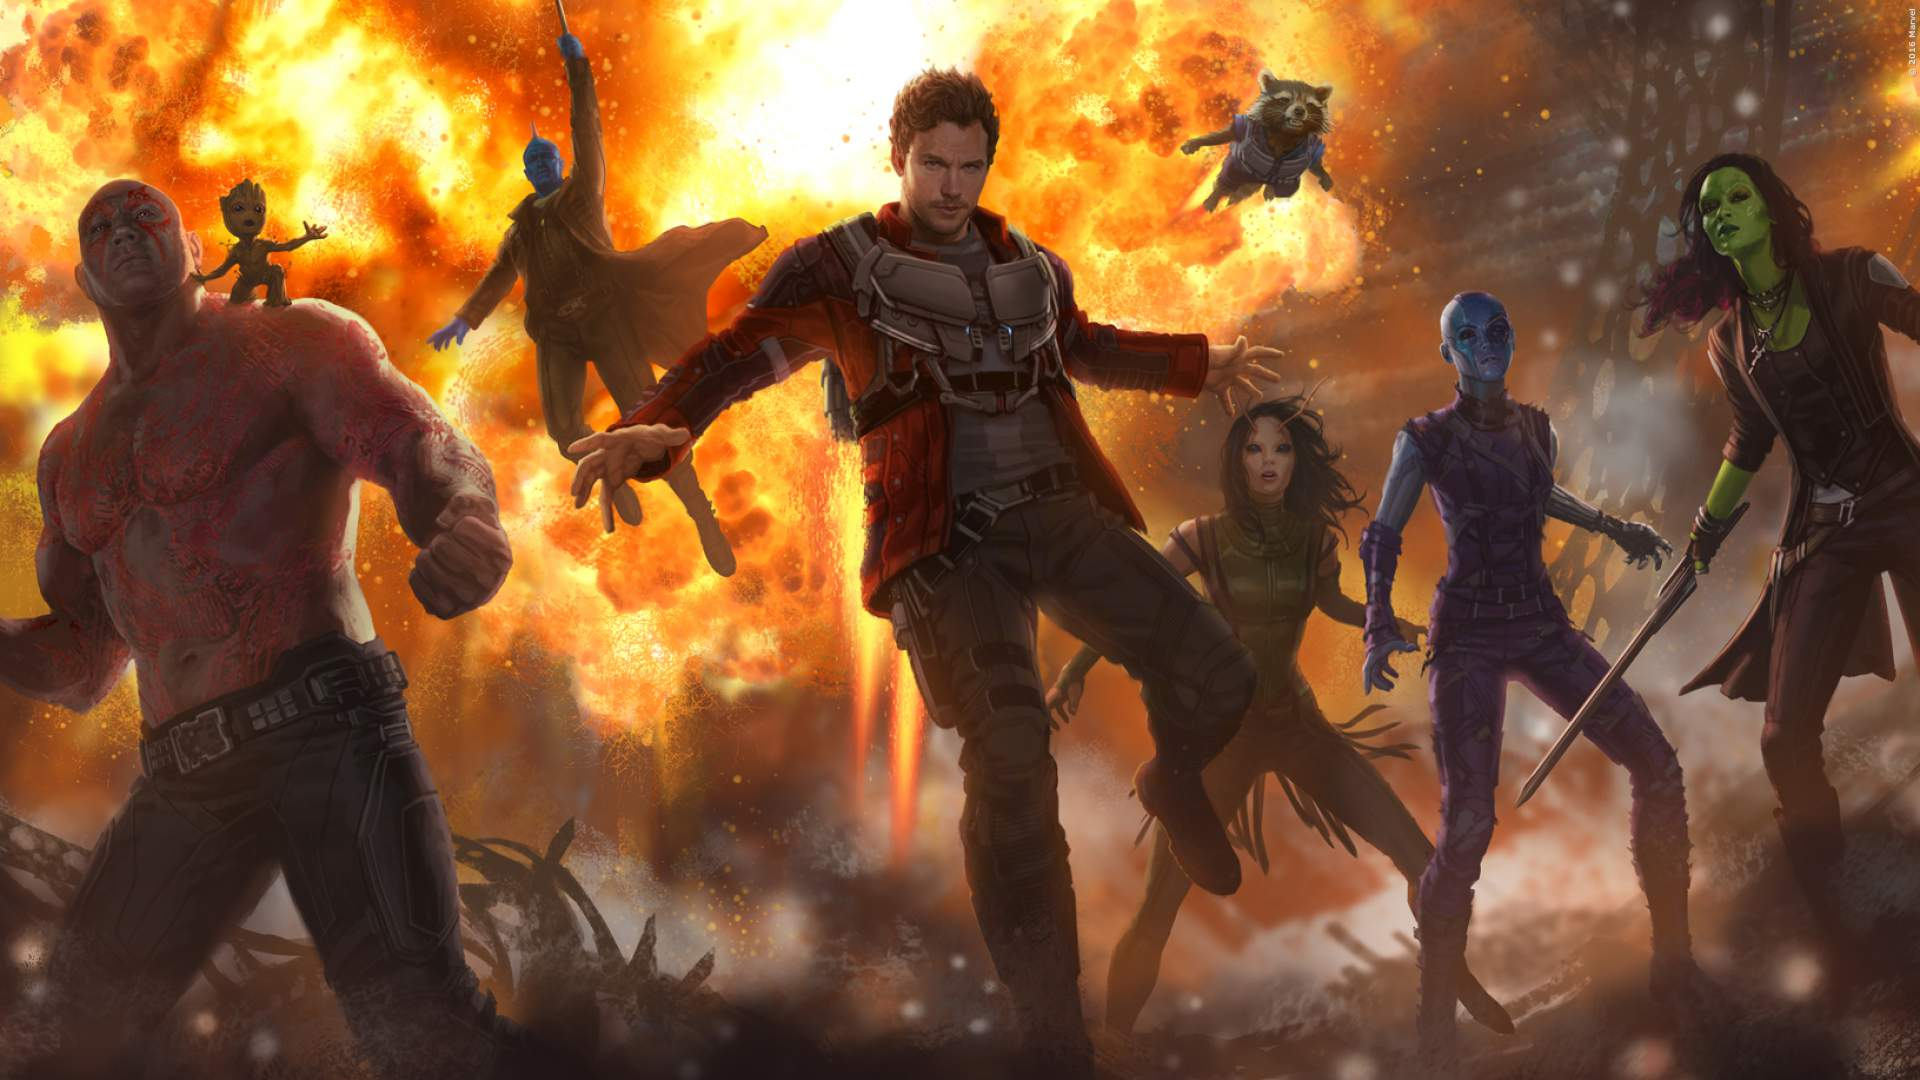 Guardians Of The Galaxy 2 - Bild 1 von 2